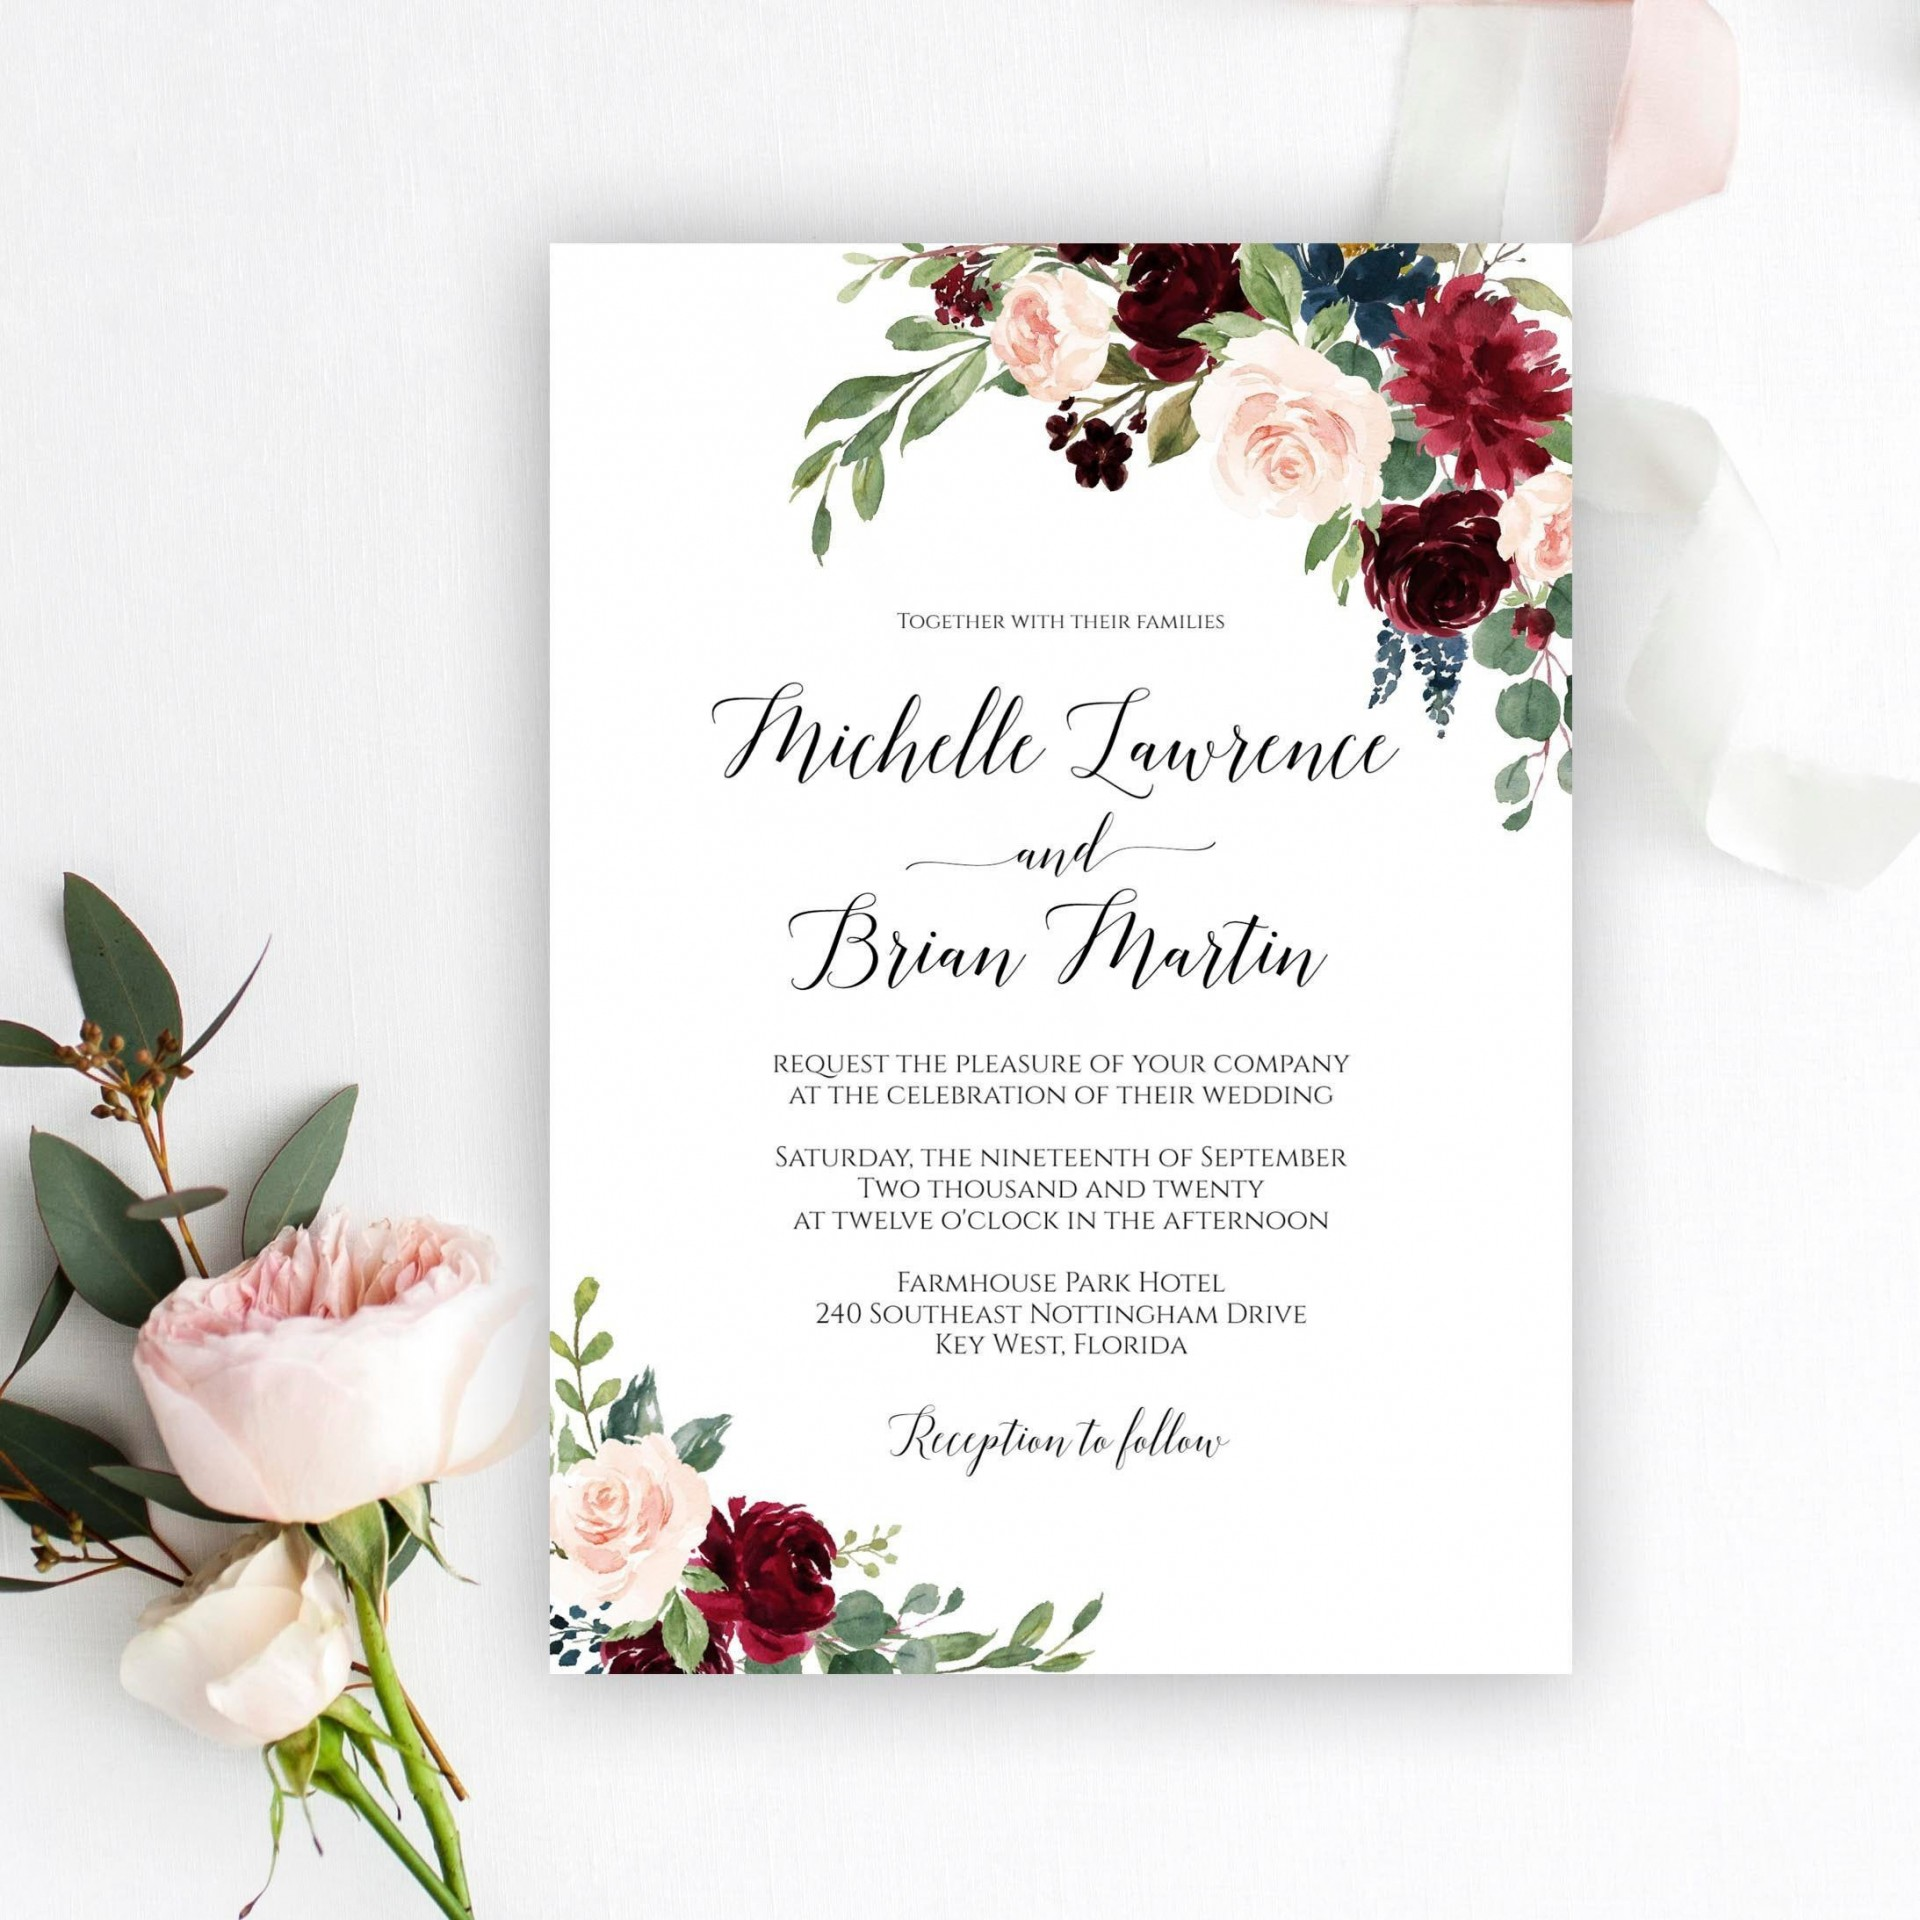 009 Fearsome Microsoft Word Wedding Invitation Template Free Download High Resolution  M Editable1920